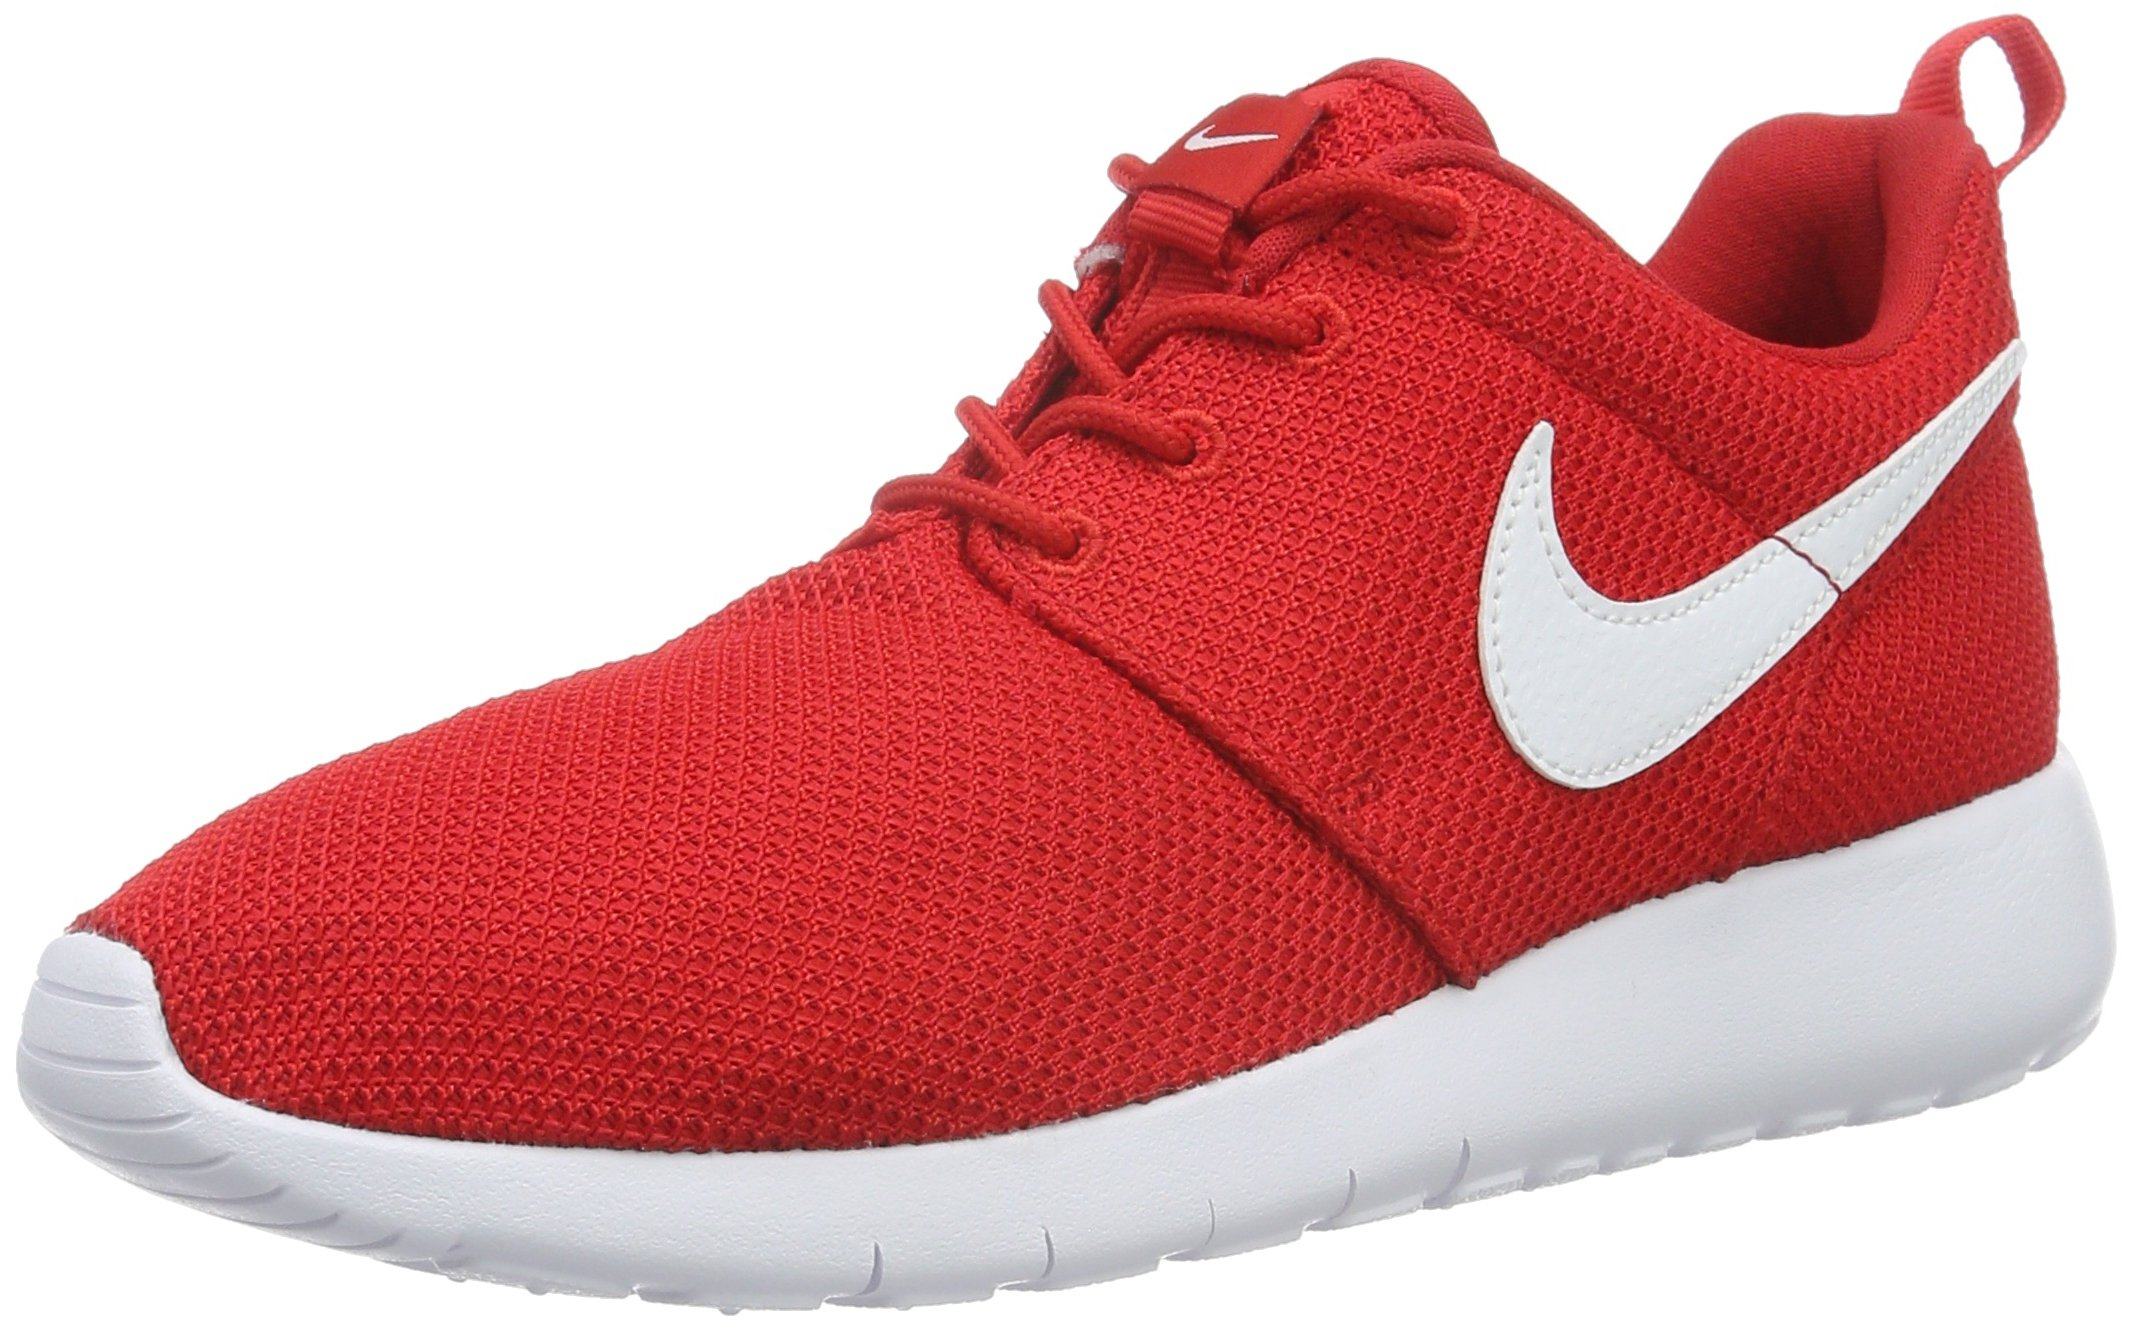 Nike Roshe One(GS)-599728-605 Size 7Y